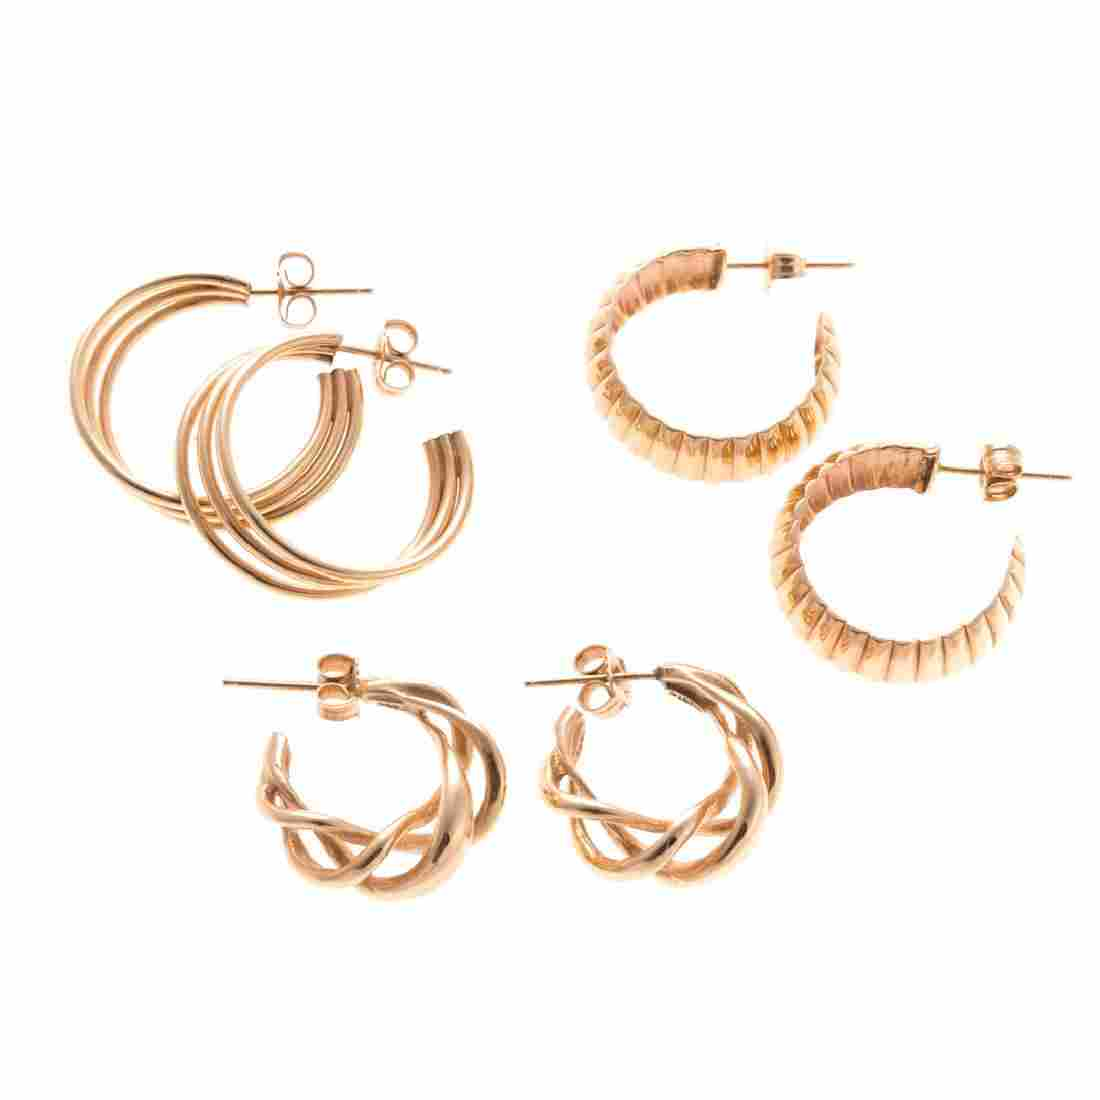 A Trio of Lady's 14K Hoops